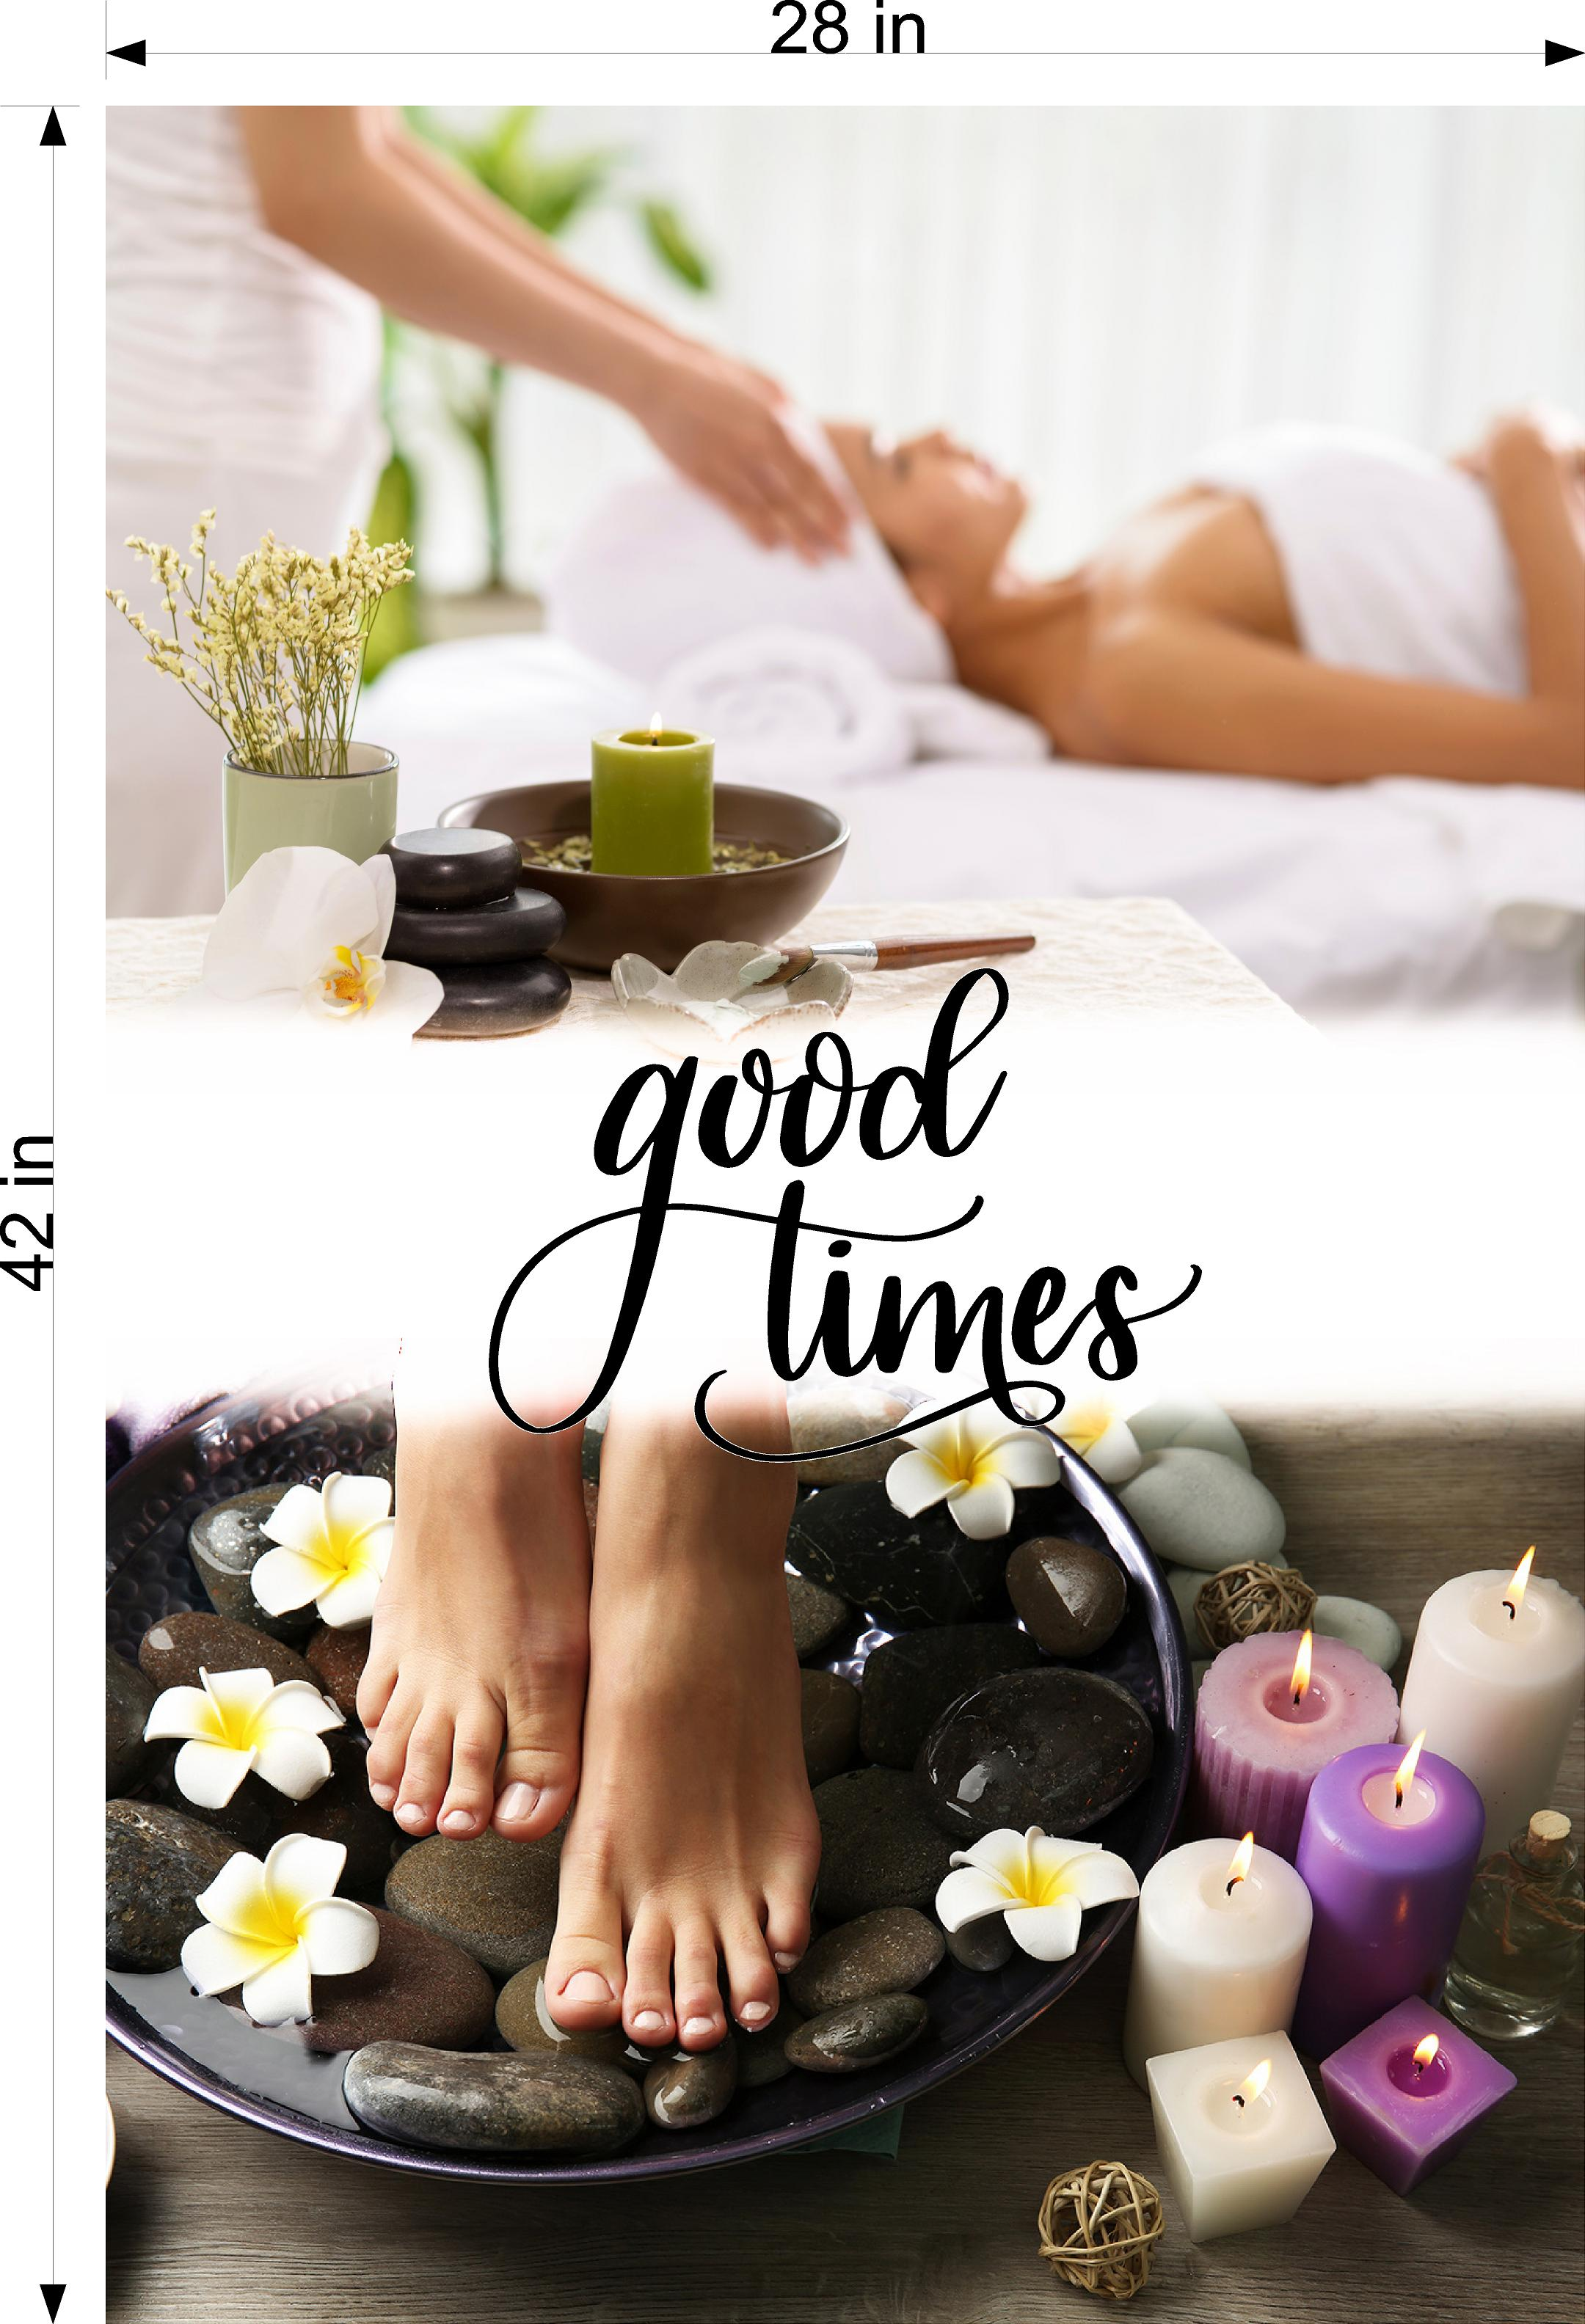 Quote 27 Wallpaper Fabric Poster Decal with Adhesive Backing Wall Sticker Decor Indoors Interior Sign Good Times Vertical